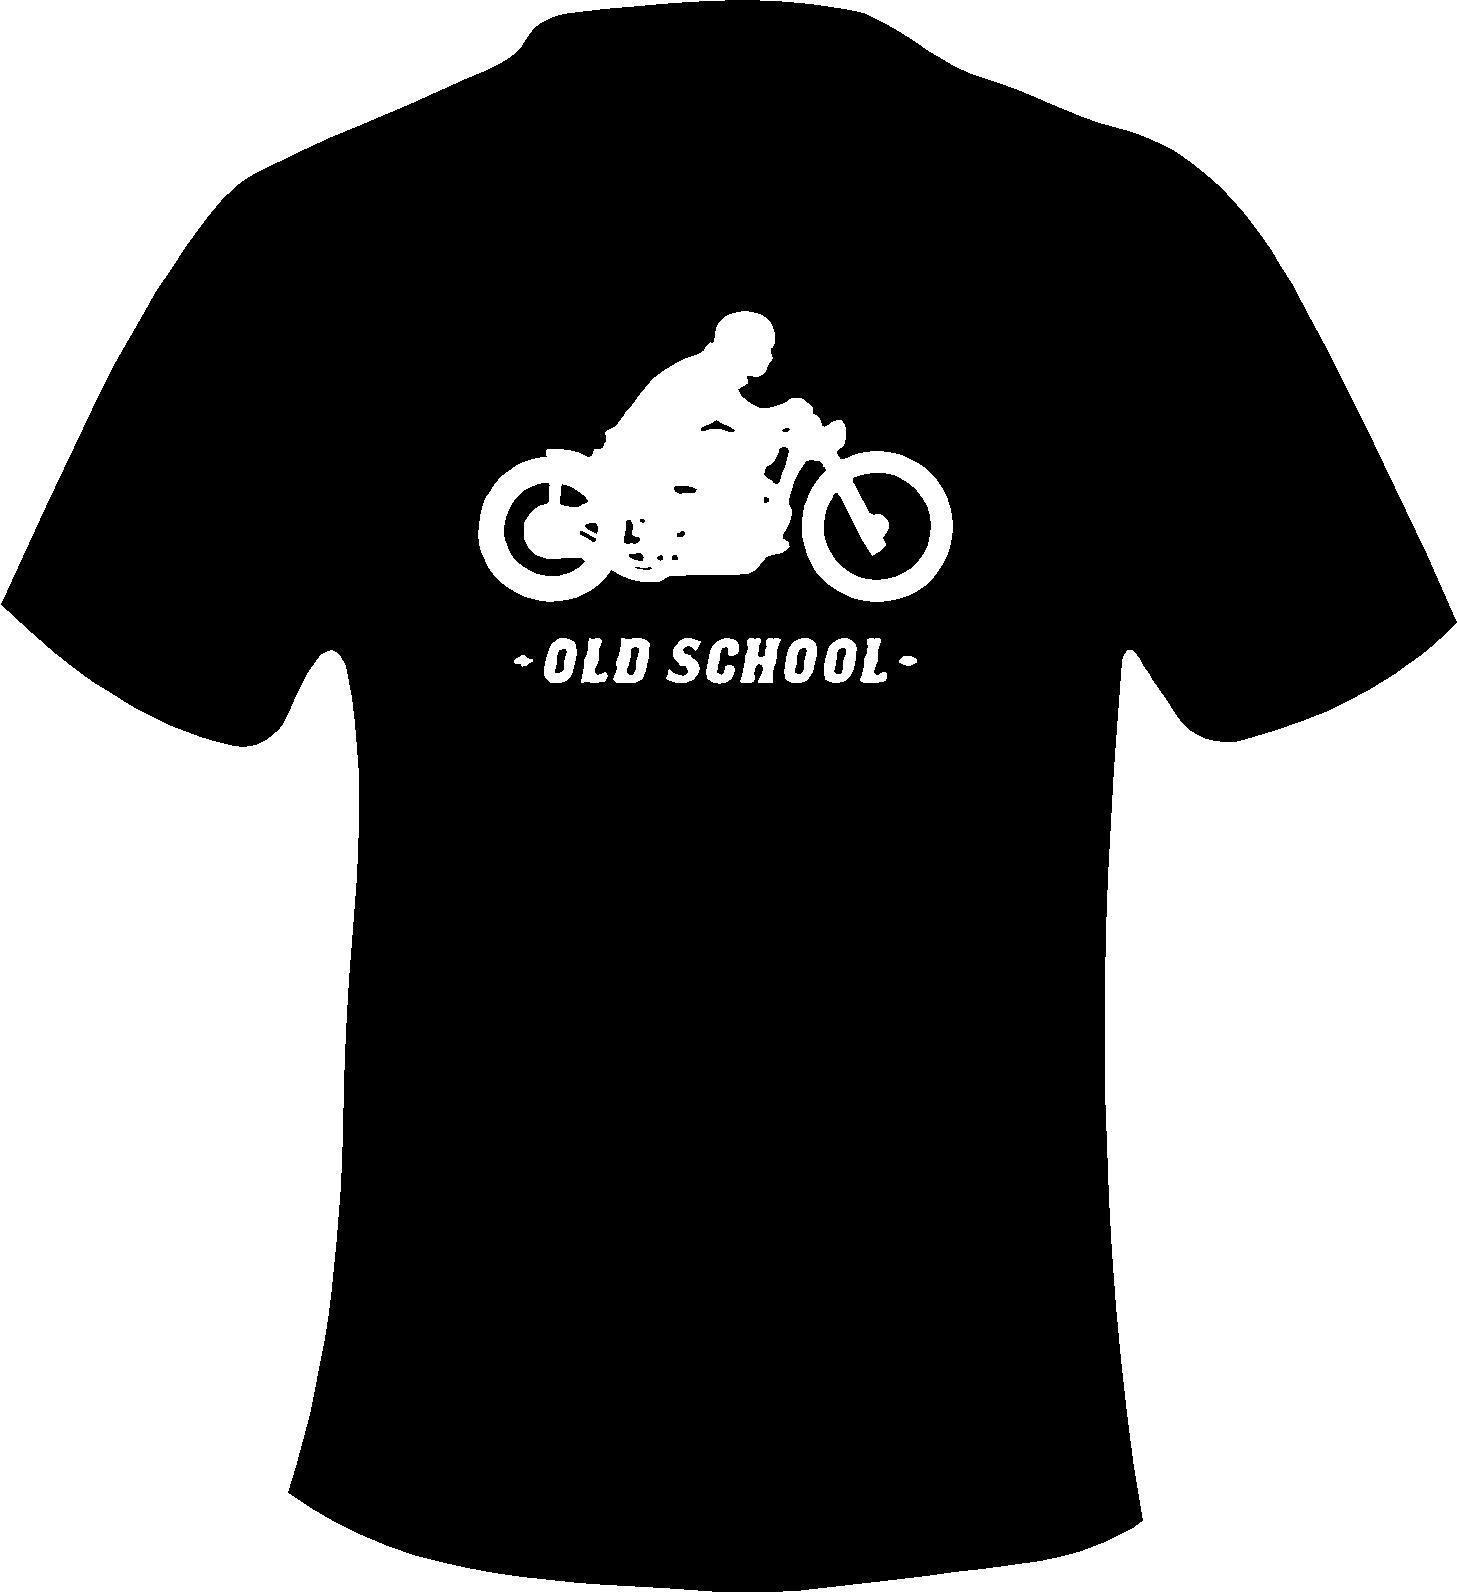 Design t shirt school - Design T Shirts Casual Cool High Quality Casual Printing Tee Biker Bobber Old School Style Motorcycle